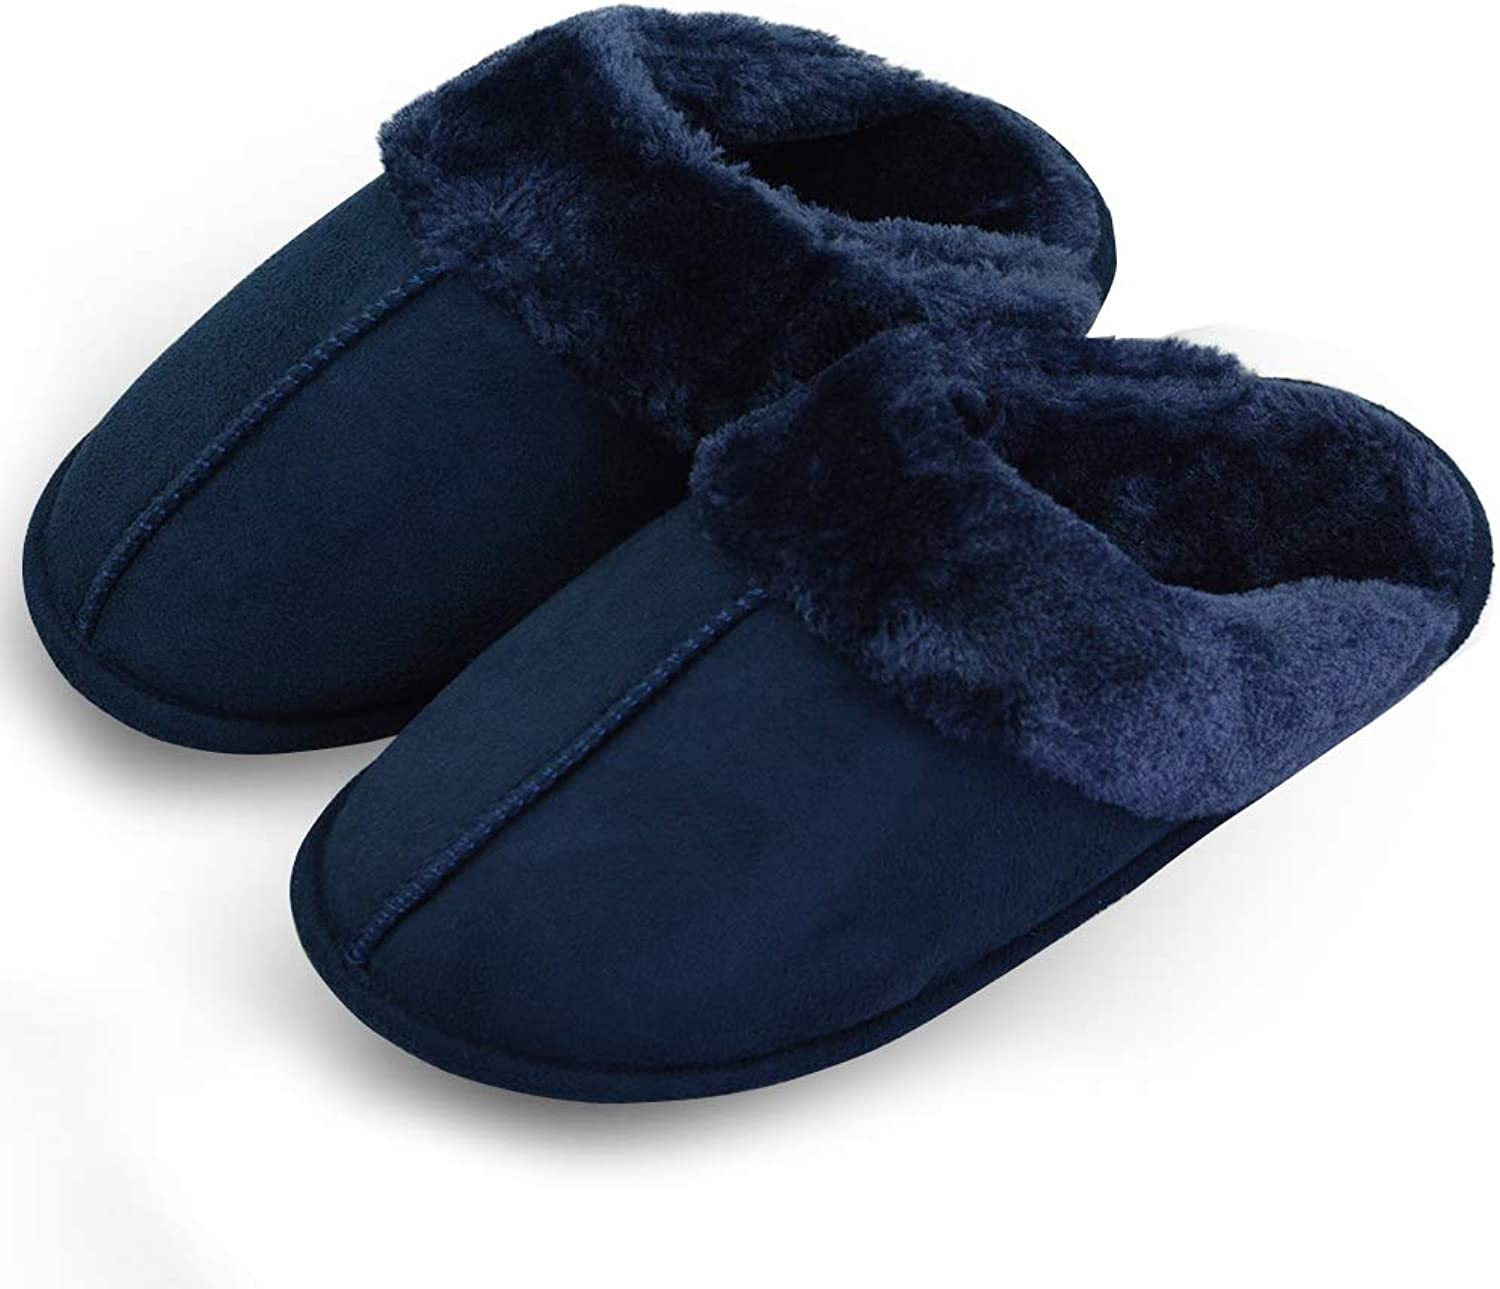 VLLY Women's Comfort Plush Slippers with Memory Foam Non-Slip House Indoor Slippers (FBA)